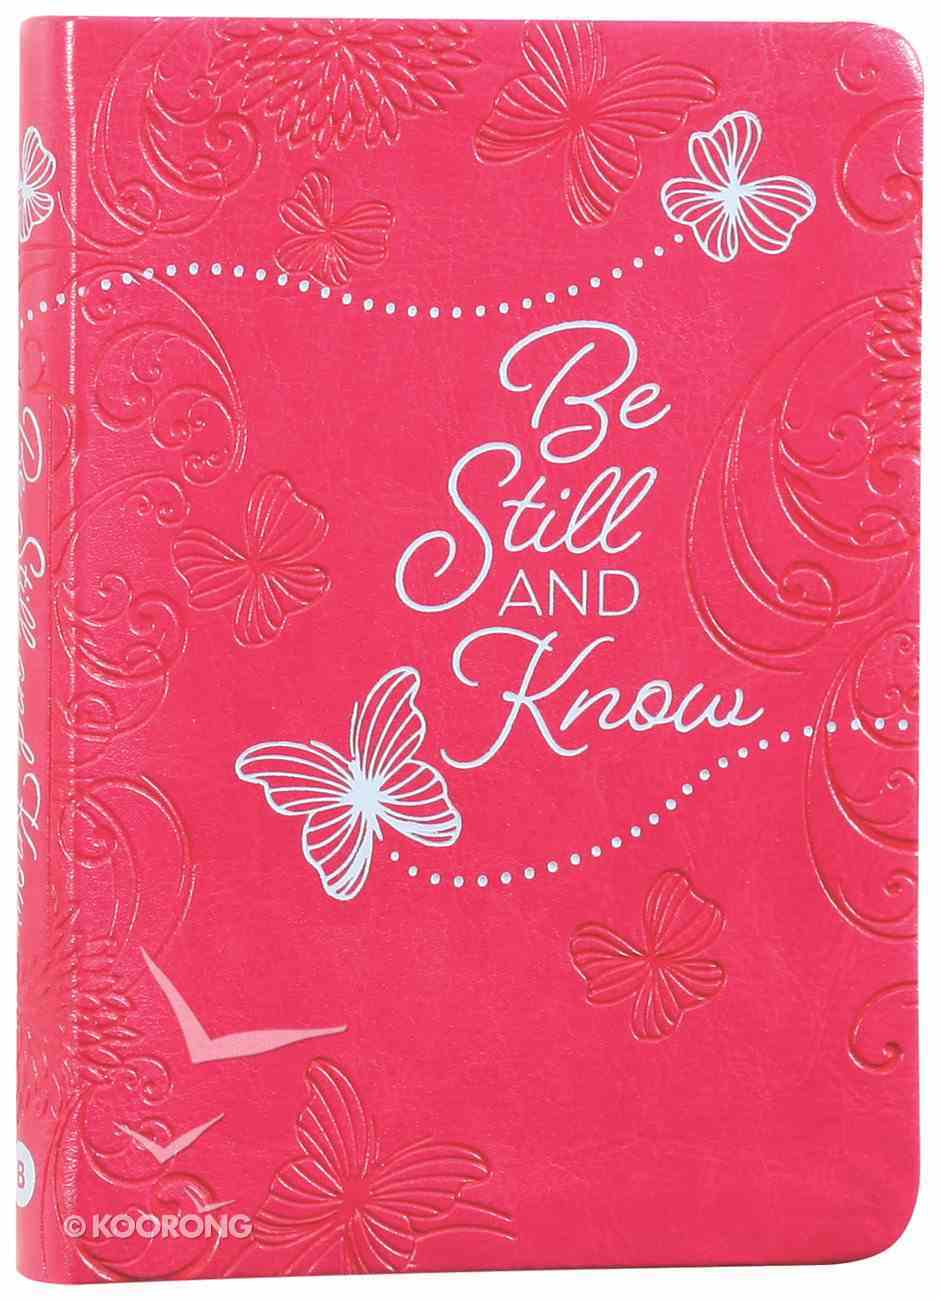 Be Still and Know: 365 Daily Devotions (365 Daily Devotions Series) Imitation Leather